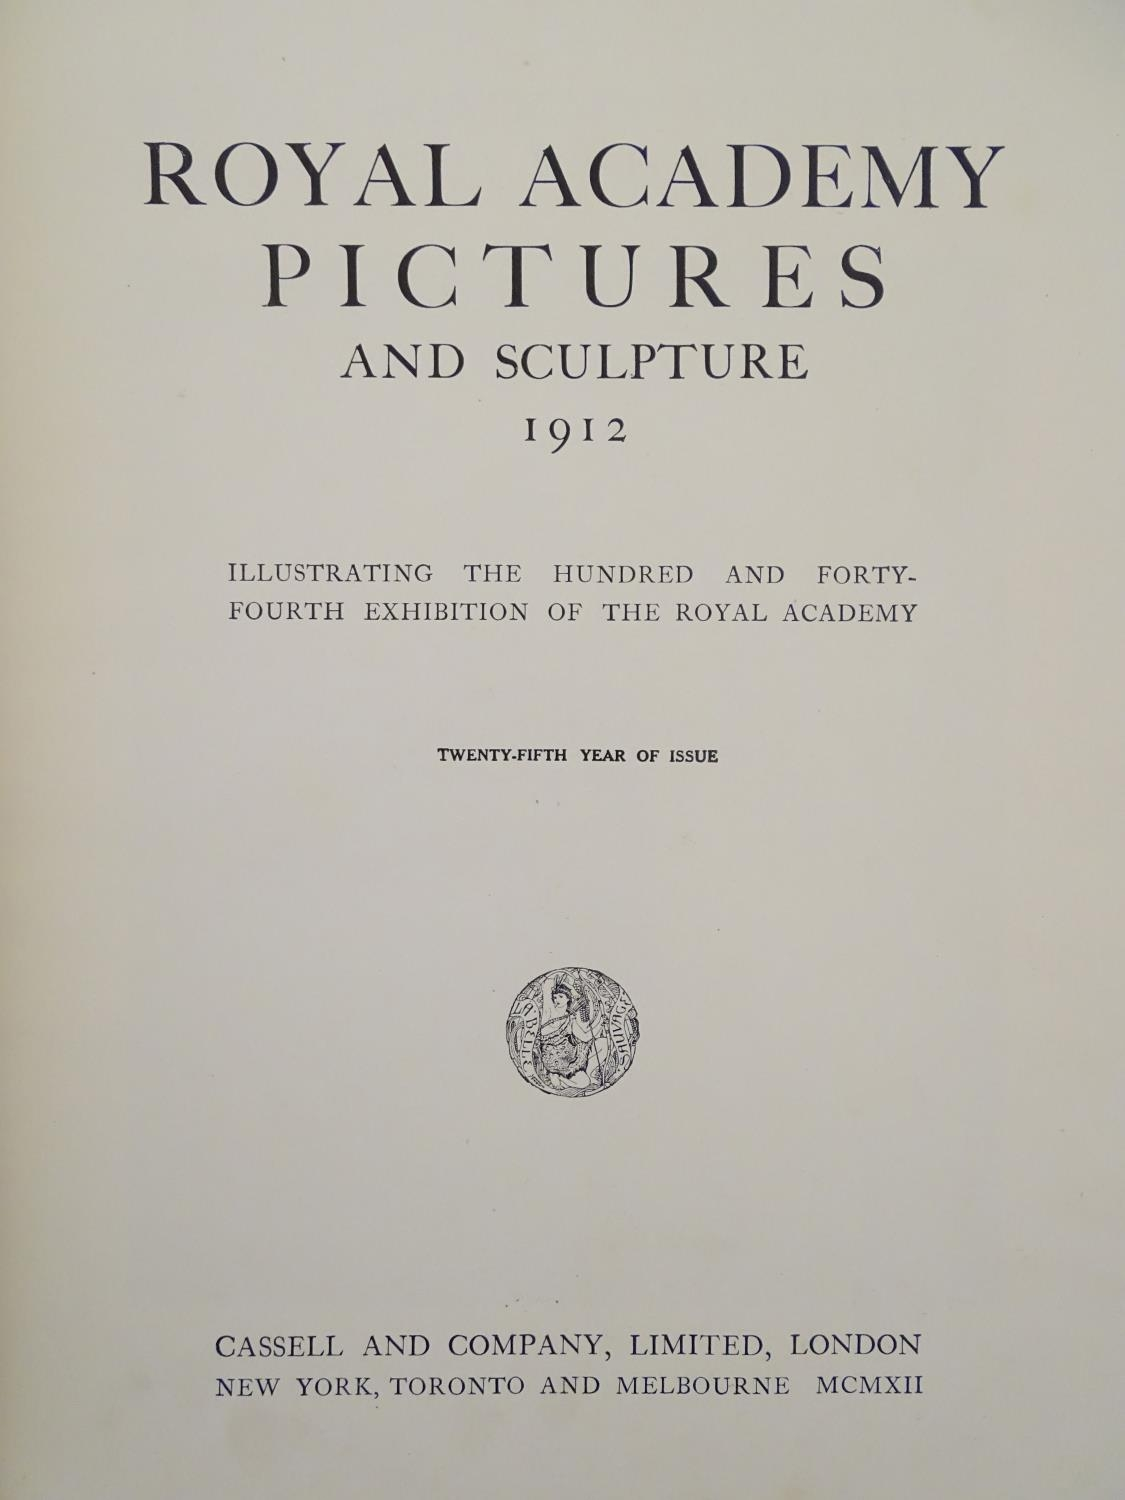 Book: Royal Academy Pictures and Sculpture 1912, illustrating the 144th exhibition of the Royal - Image 2 of 8